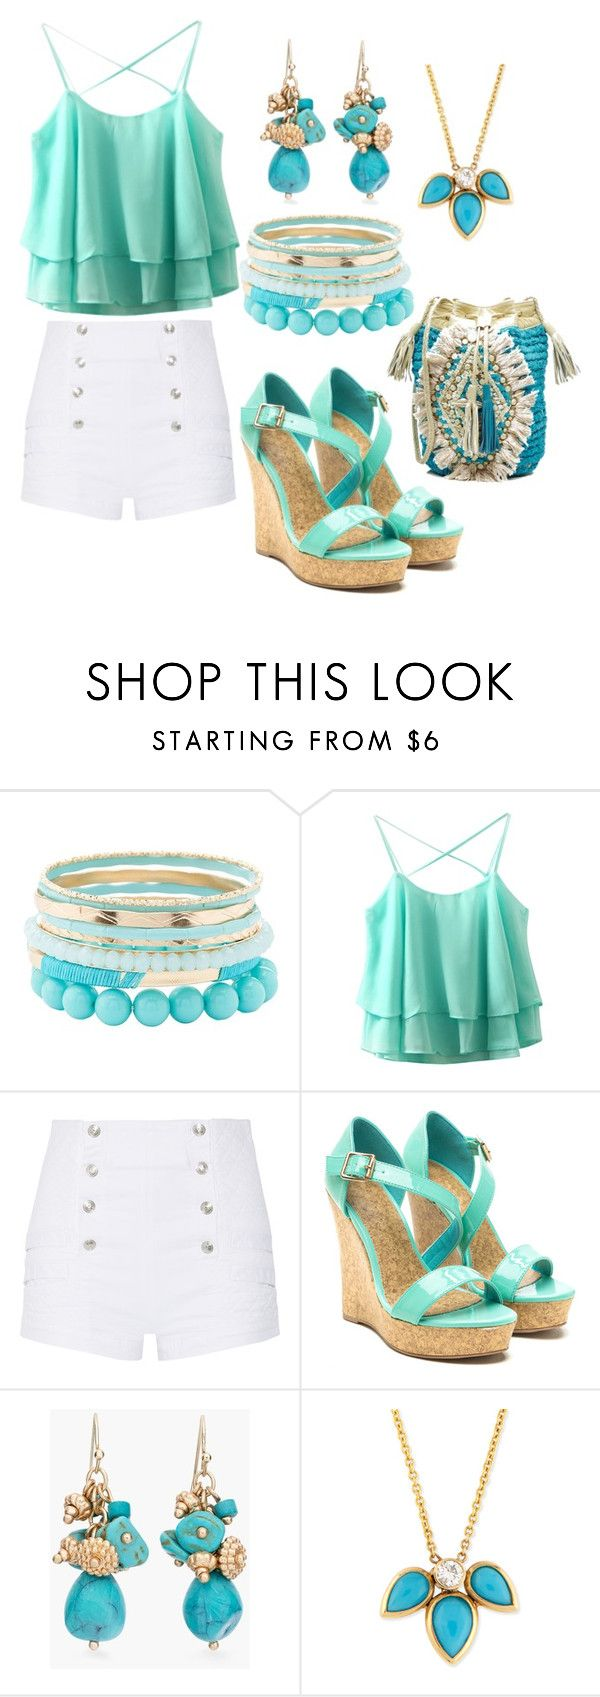 """""""Color of the Day 6/23: Turquoise"""" by abbyandelle ❤ liked on Polyvore featuring Charlotte Russe, Pierre Balmain, Chico's, ZoÃ« Chicco, Antik Batik, fashiontips, coloroftheday, AbbyAndElle and upstairsfashion"""